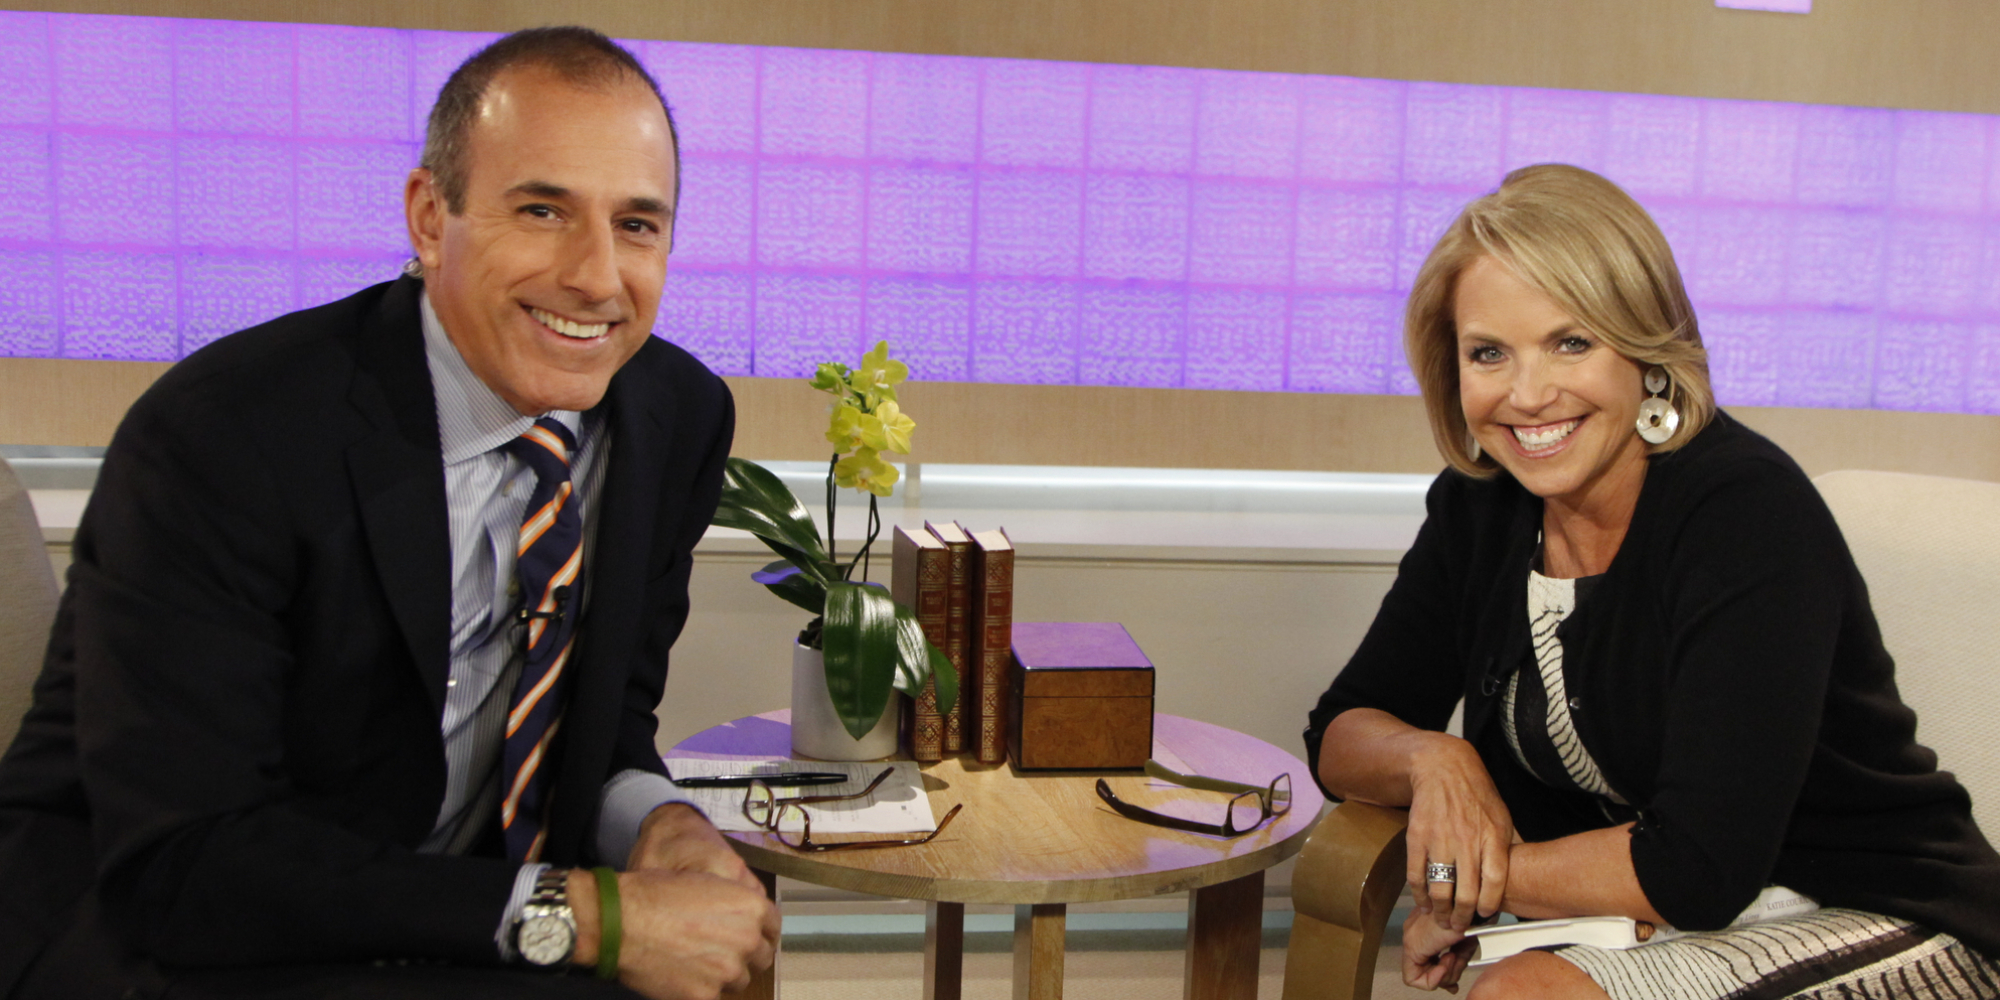 Matt Lauer Story On Today Video